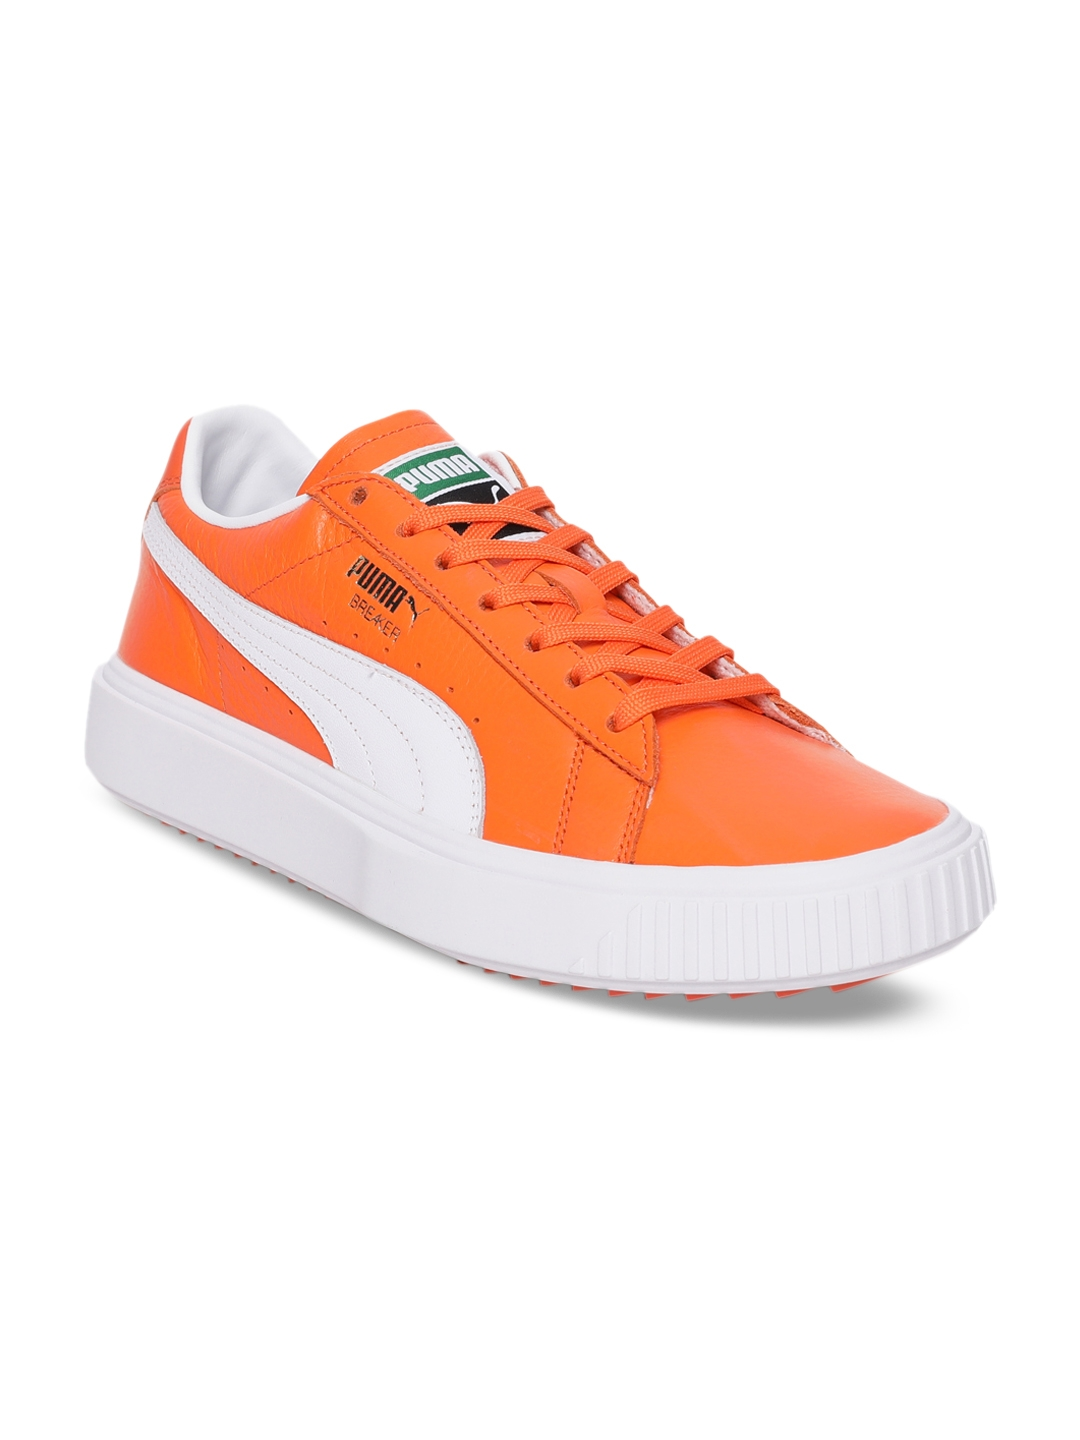 1f677b4d0f9c04 Buy Puma Unisex Orange Leather Sneakers - Casual Shoes for Unisex ...